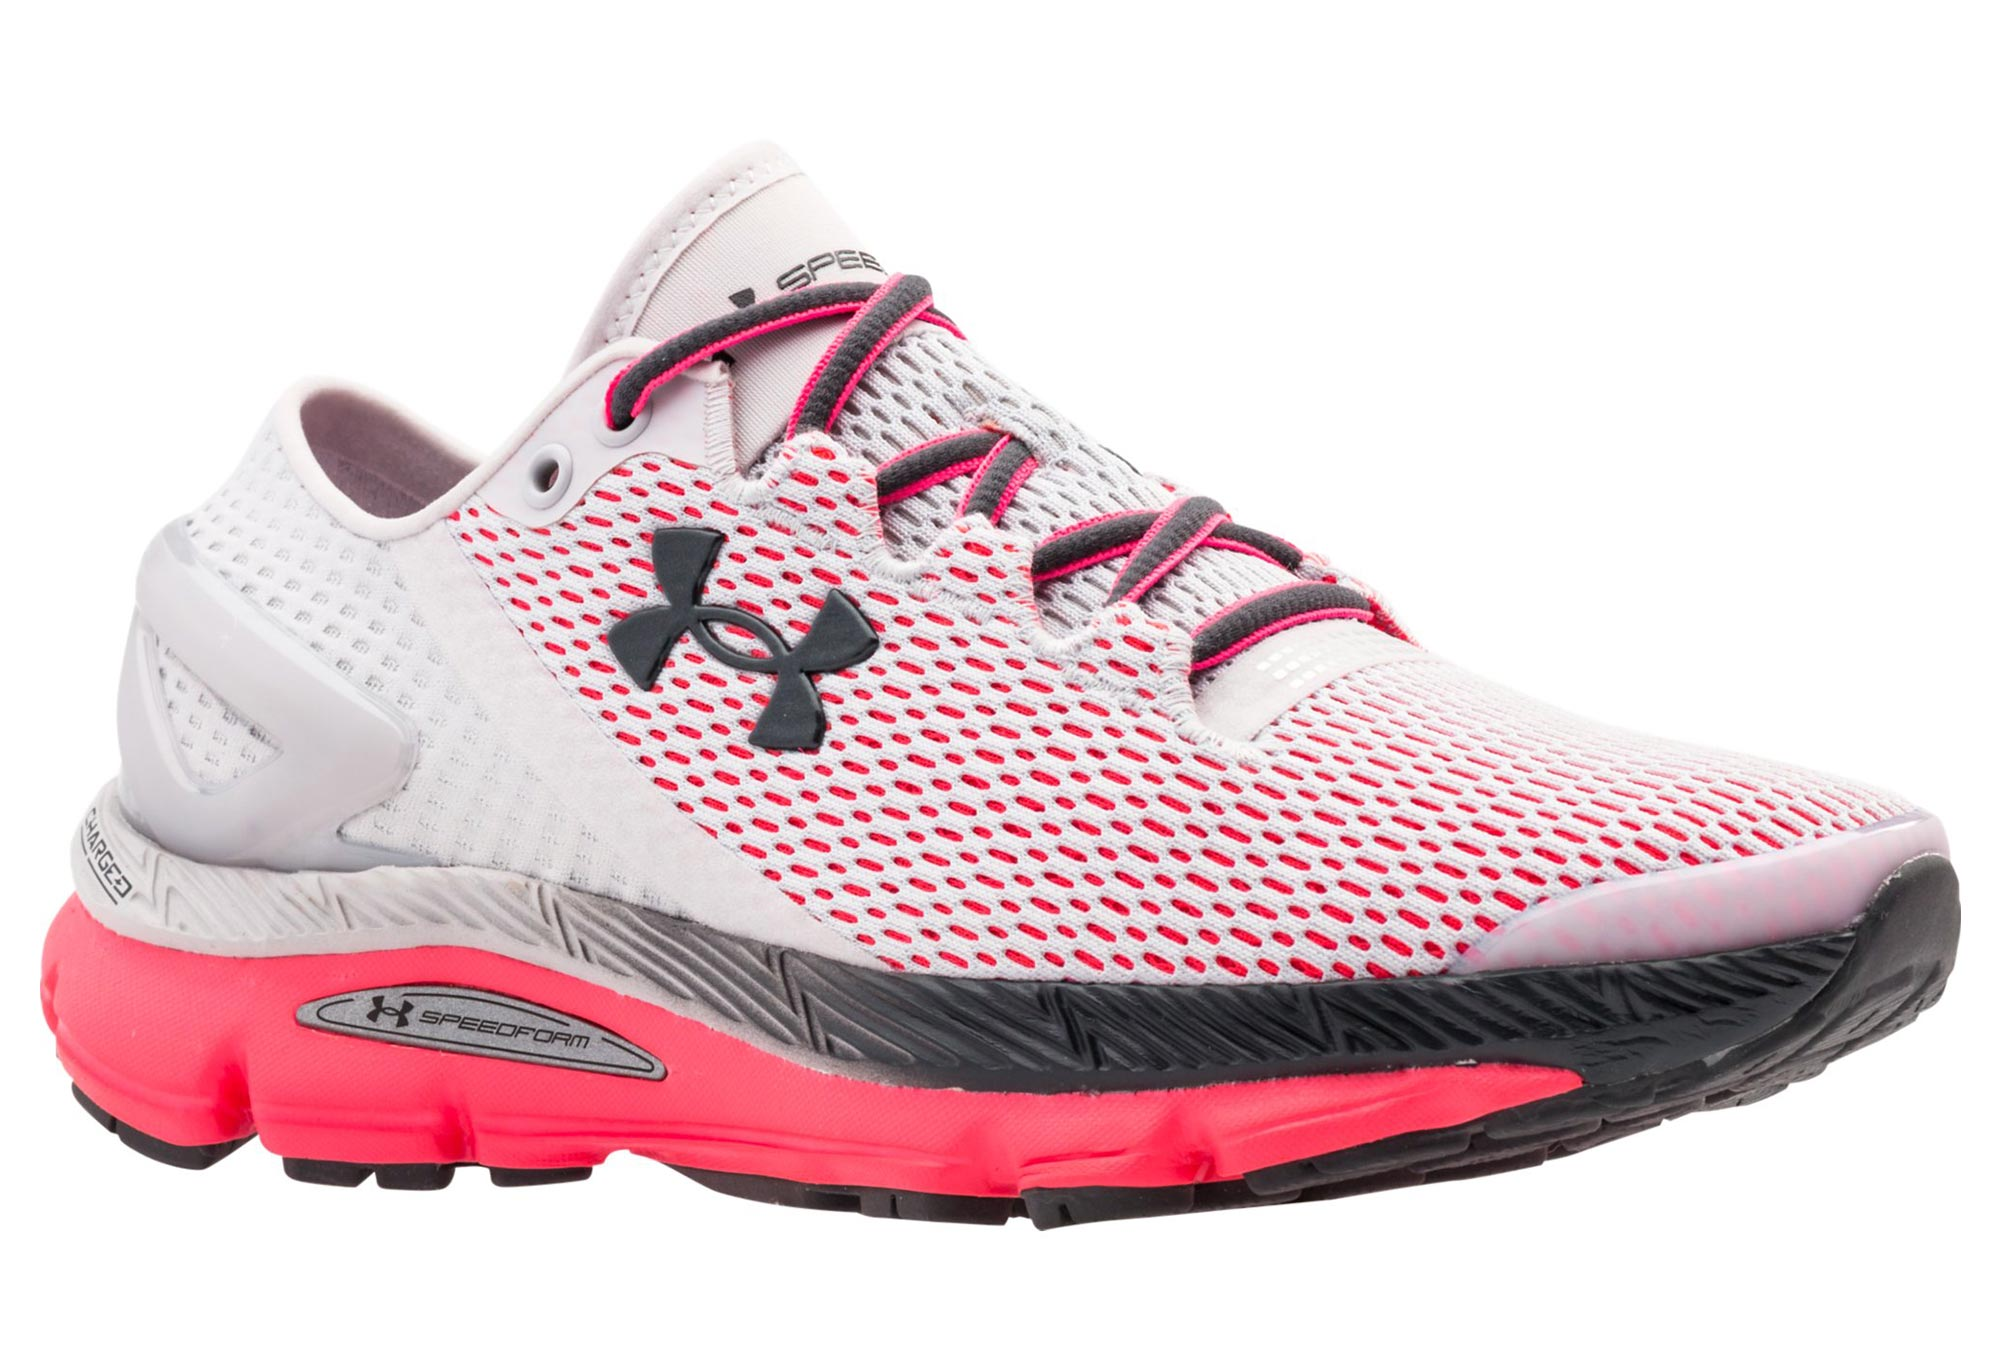 fb66233426f Zapatillas Under Armour SPEEDFORM GEMINI 2.1 para Mujer Blanco   Rosa